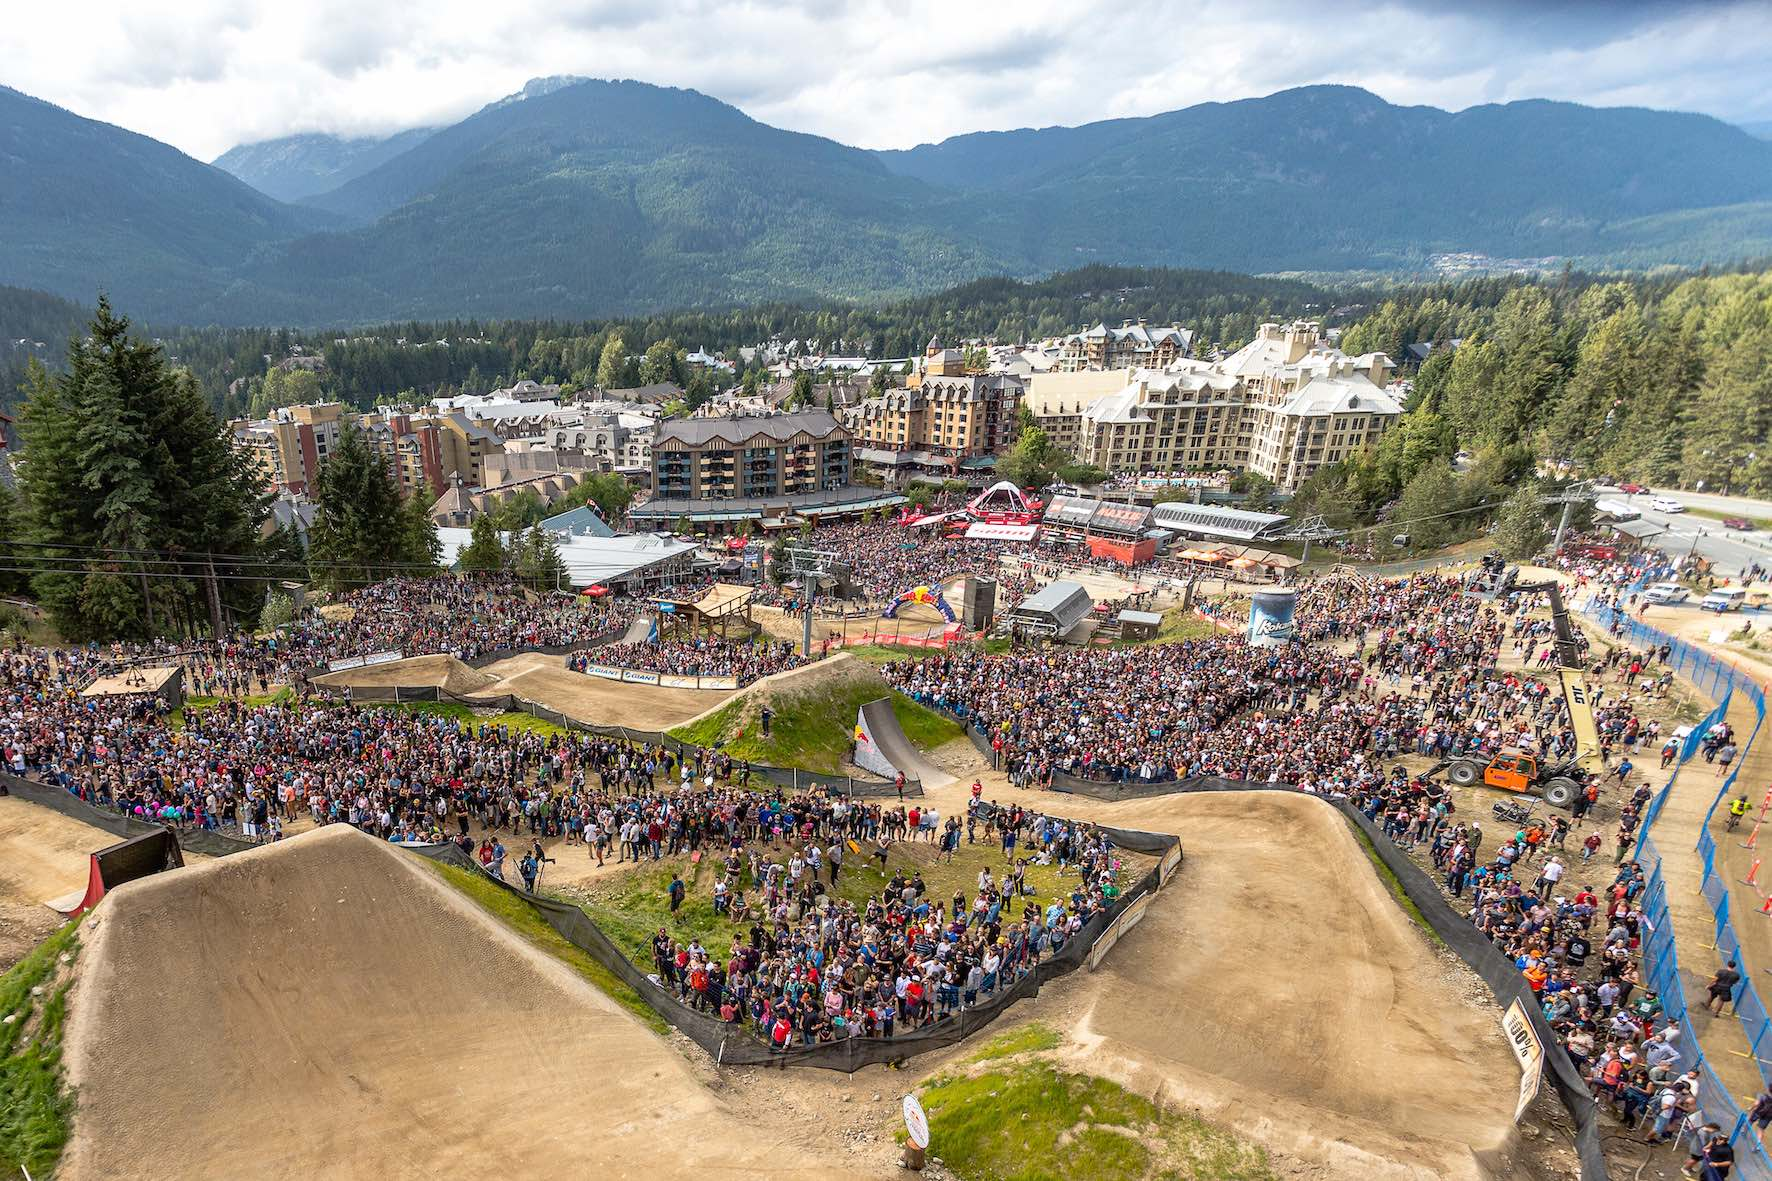 The venue for Red Bull Joyride 2019